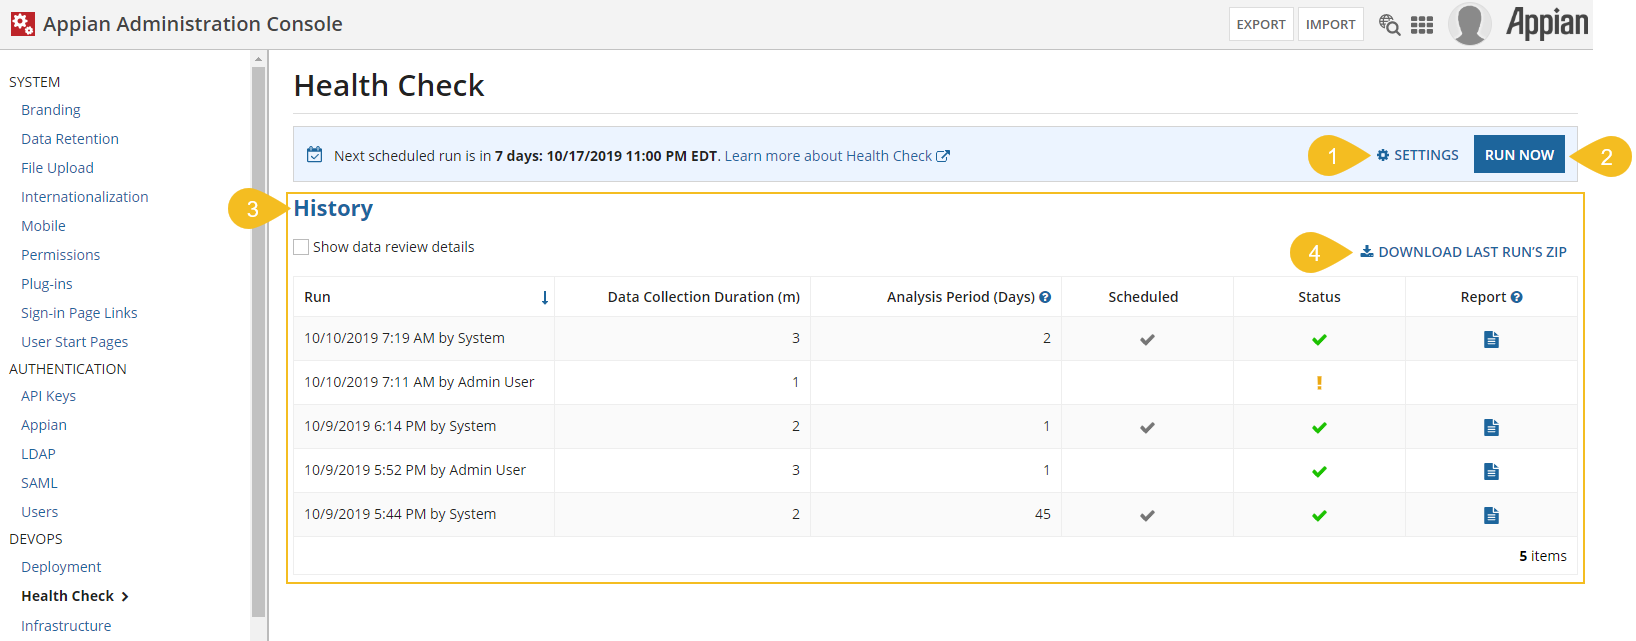 Appian Administration Console